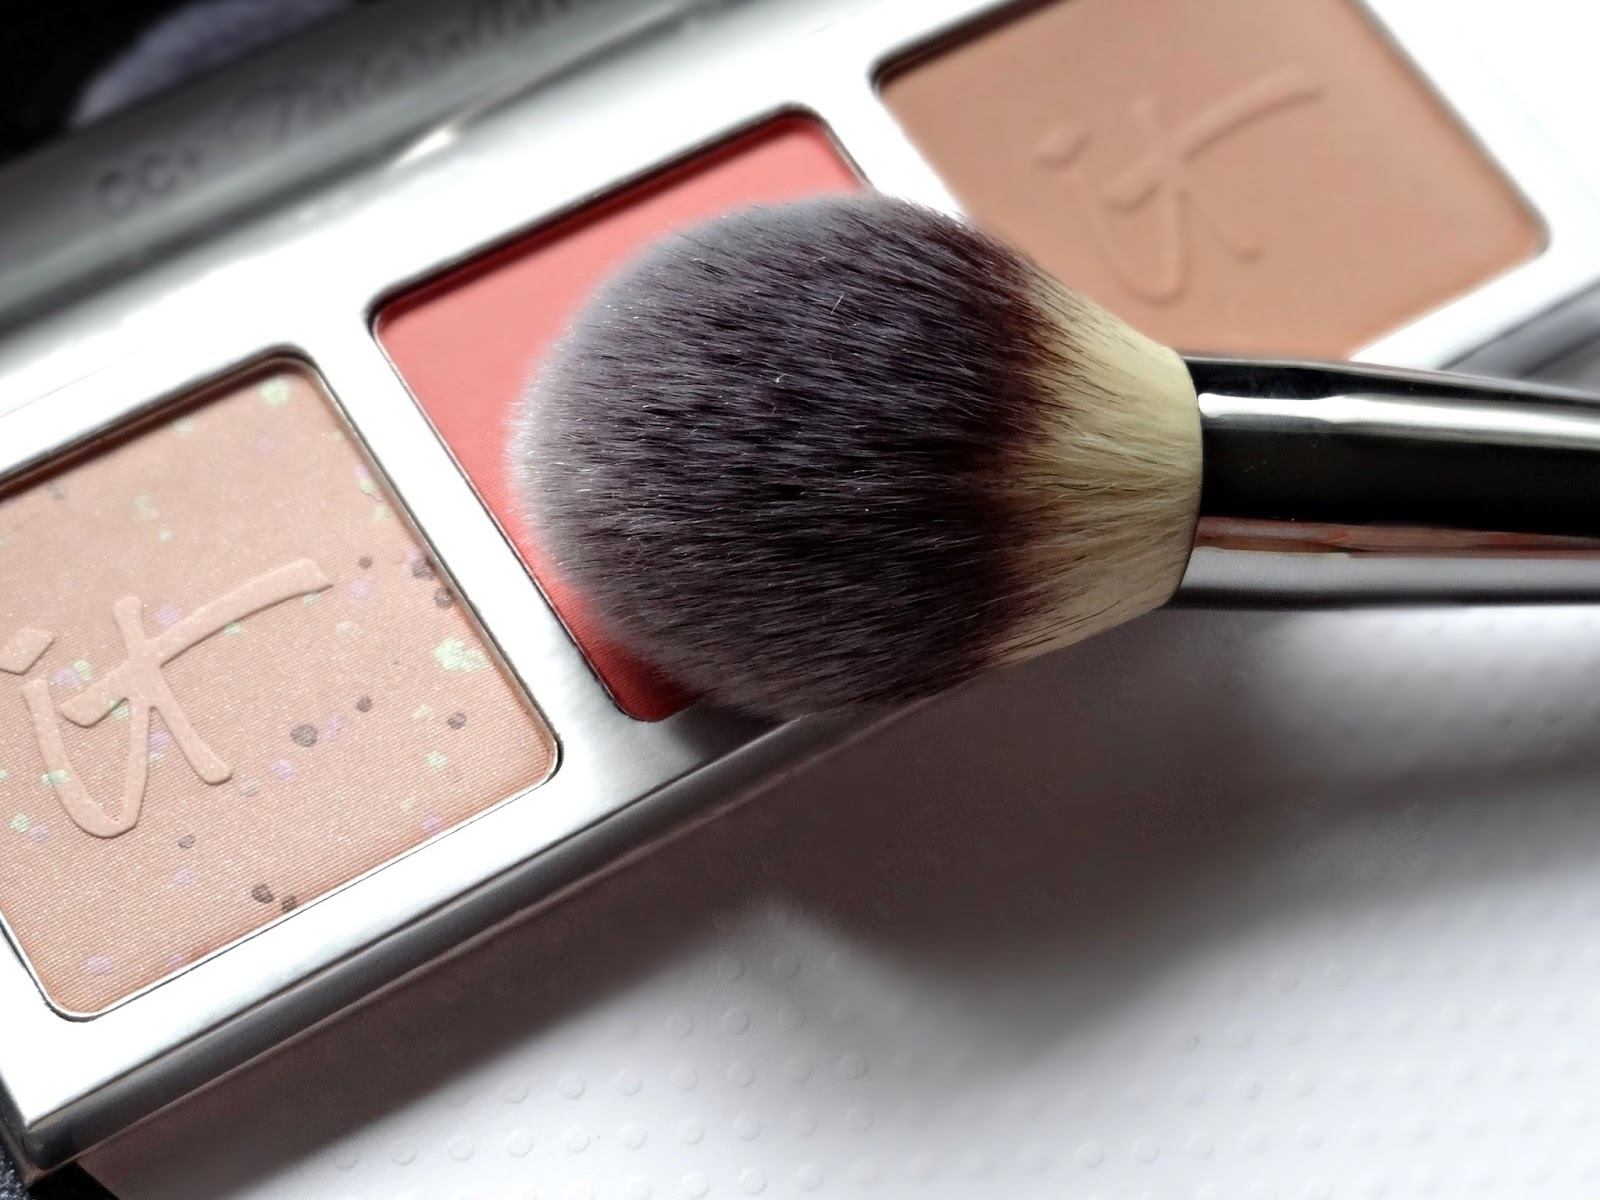 IT Cosmetics CC+ Radiance Palette and Heavenly Luxe Wand Ball Brush